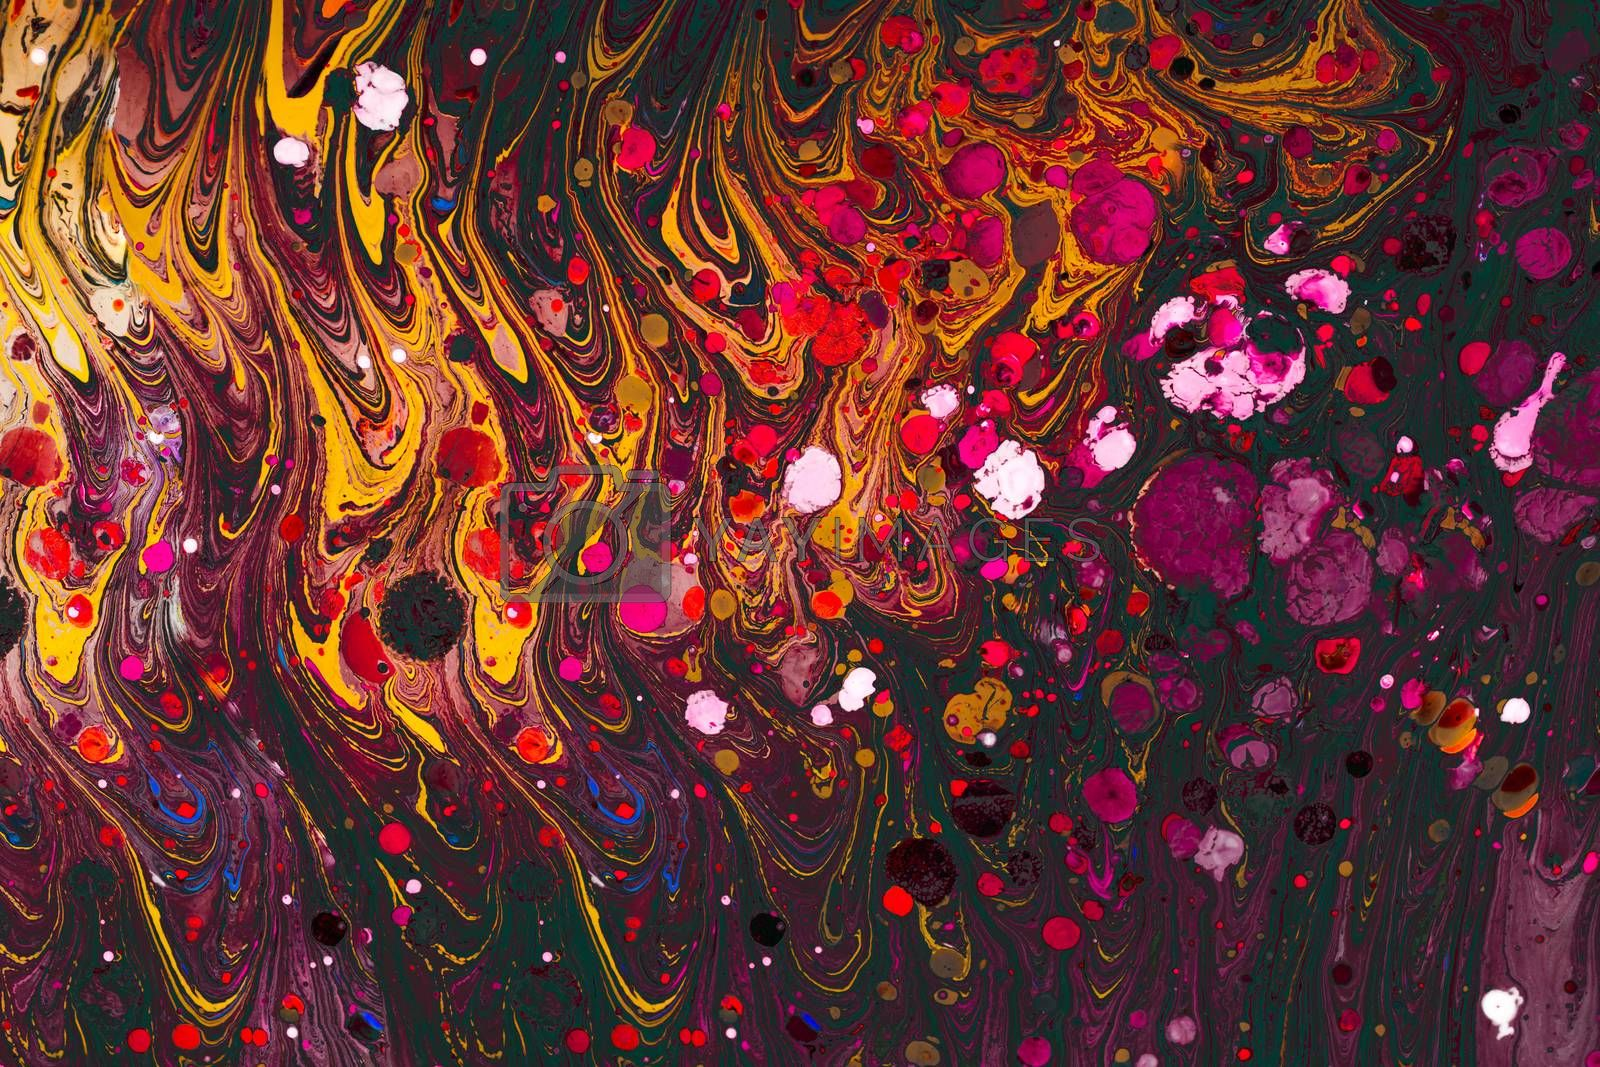 Traditional Ottoman Turkish marbling art patterns as abstract background